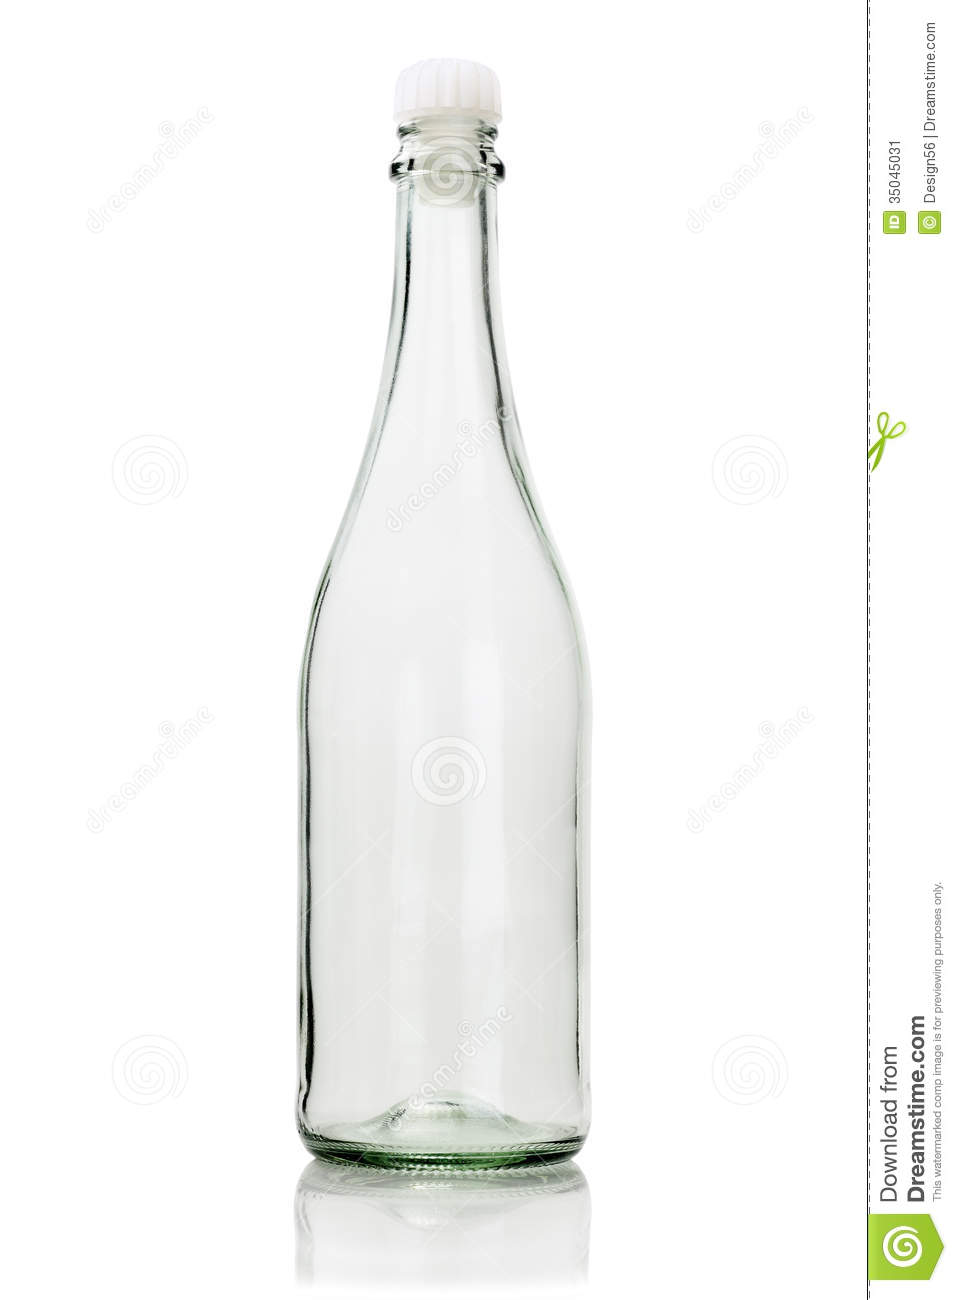 Empty Glass Bottle stock image. Image of isolated, plastic